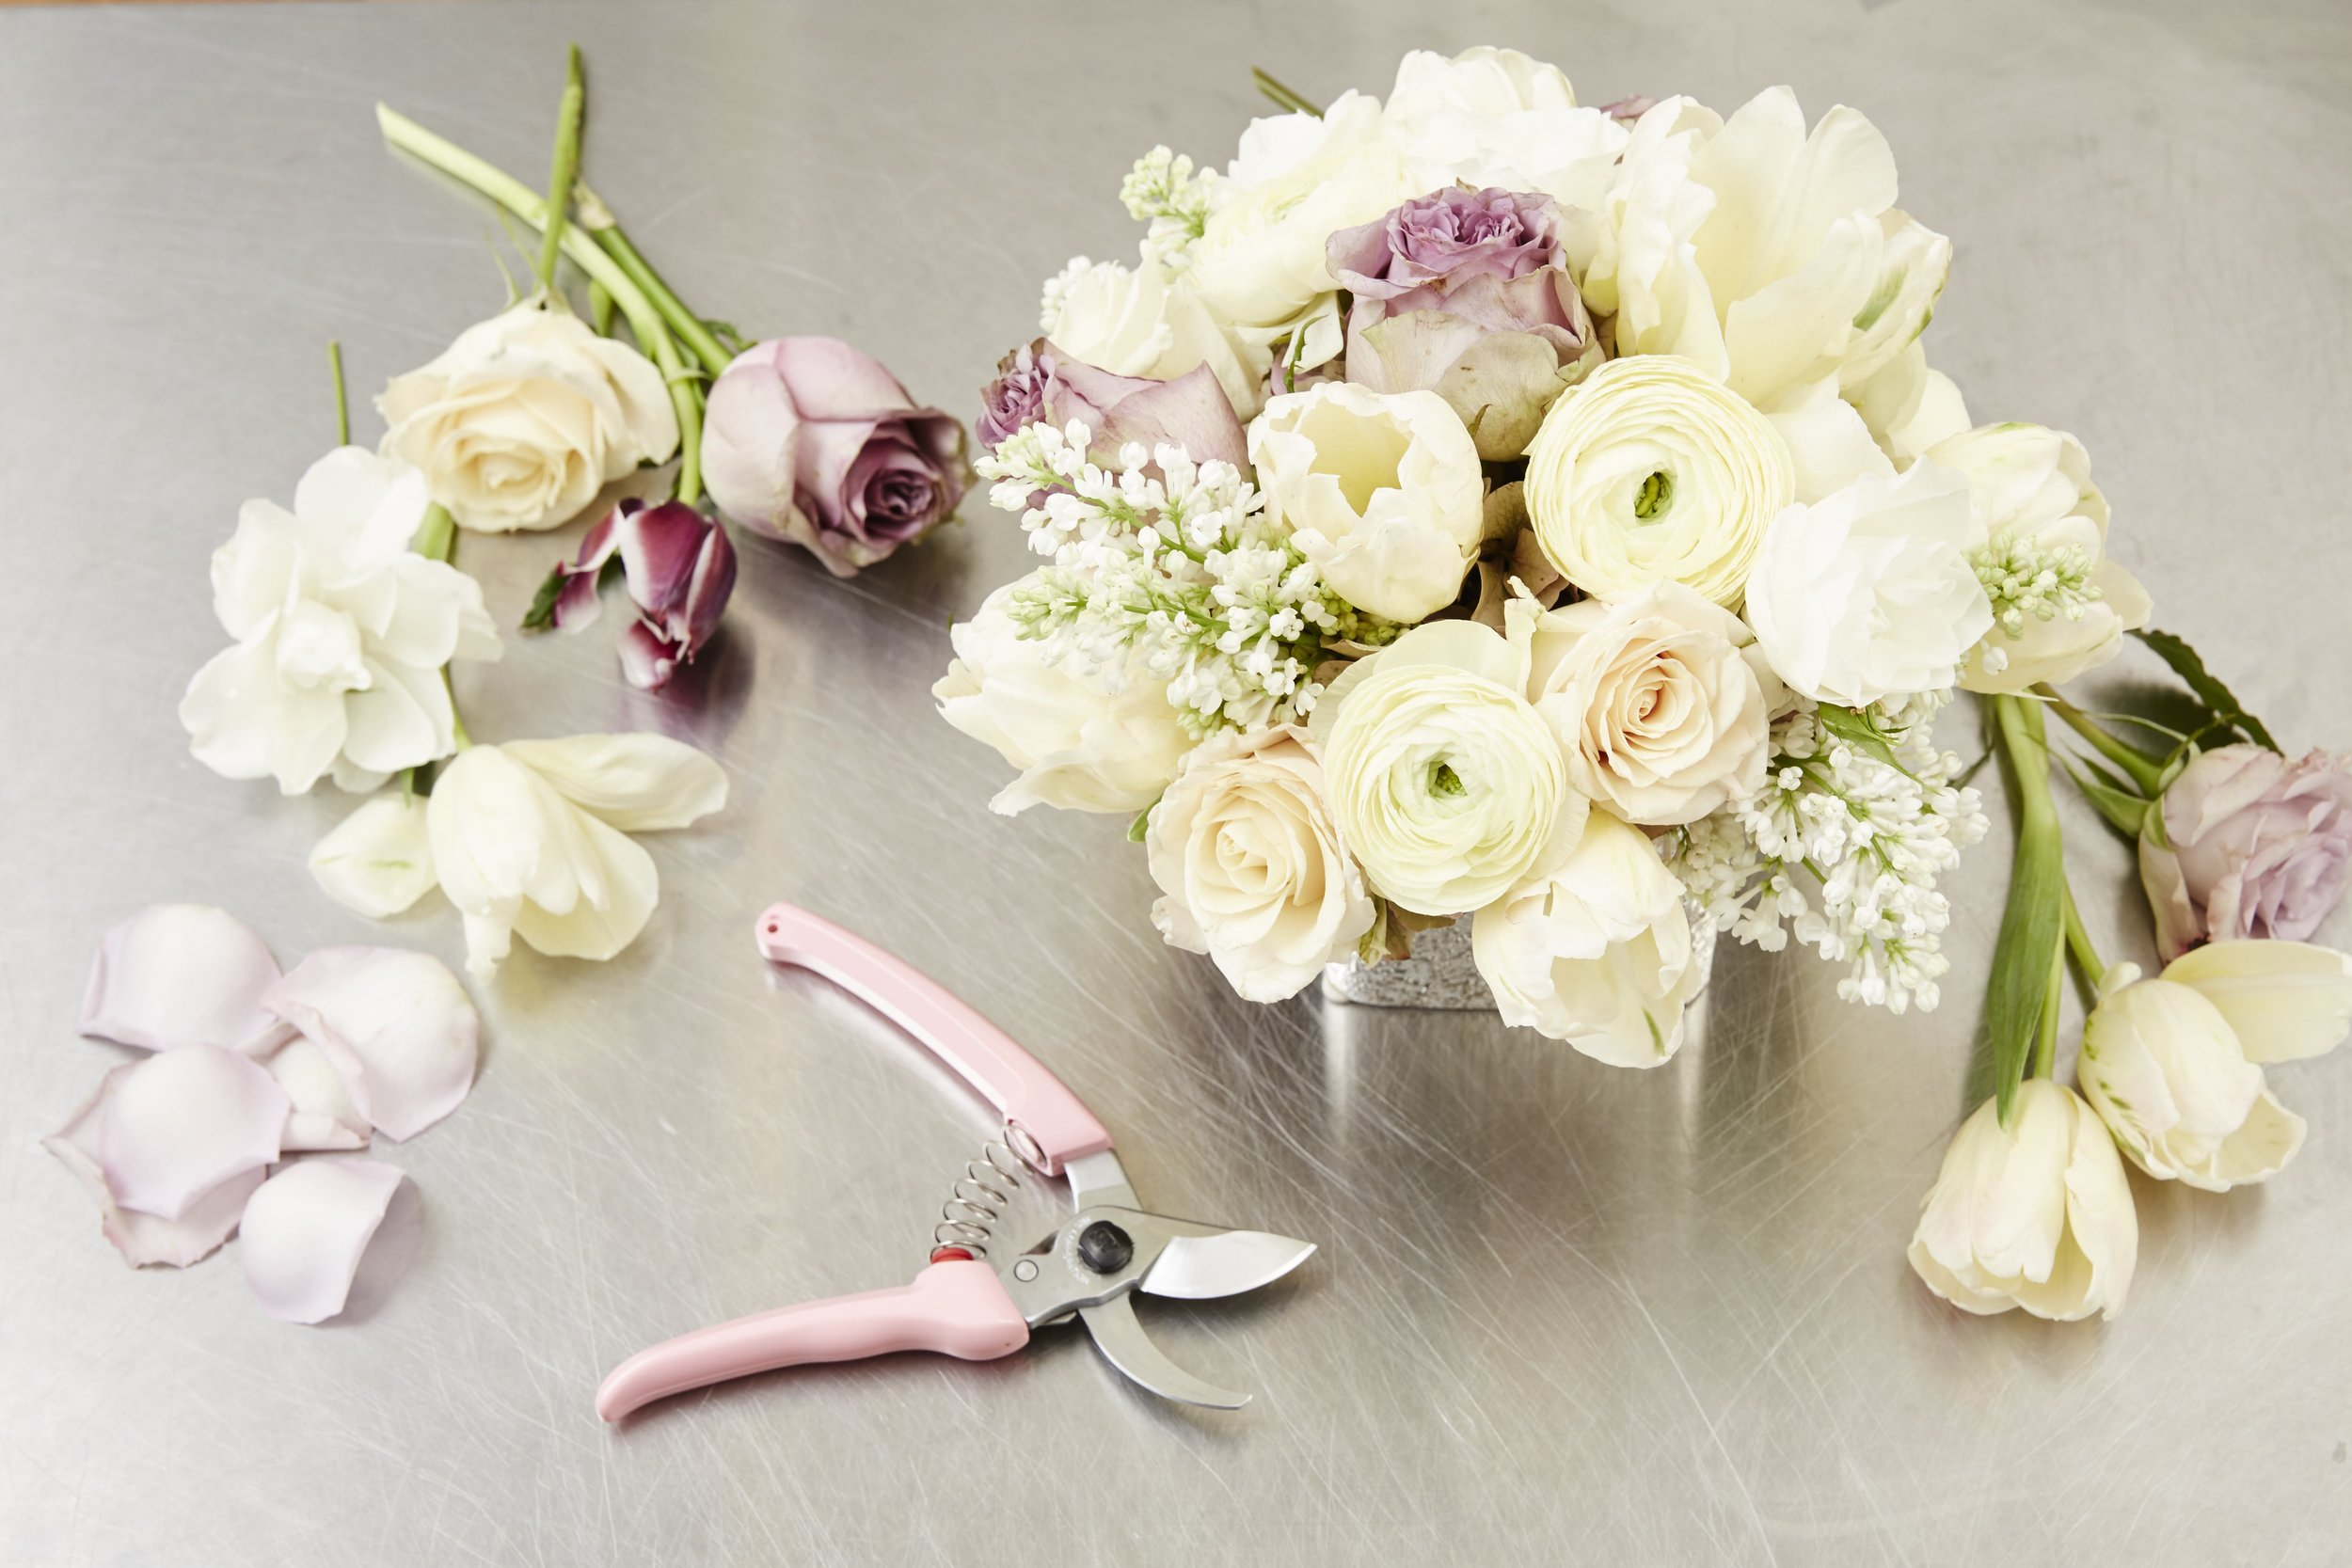 DIY SPRING FLOWER ARRANGEMENT - STEP BY STEP GUIDE - B FLORAL